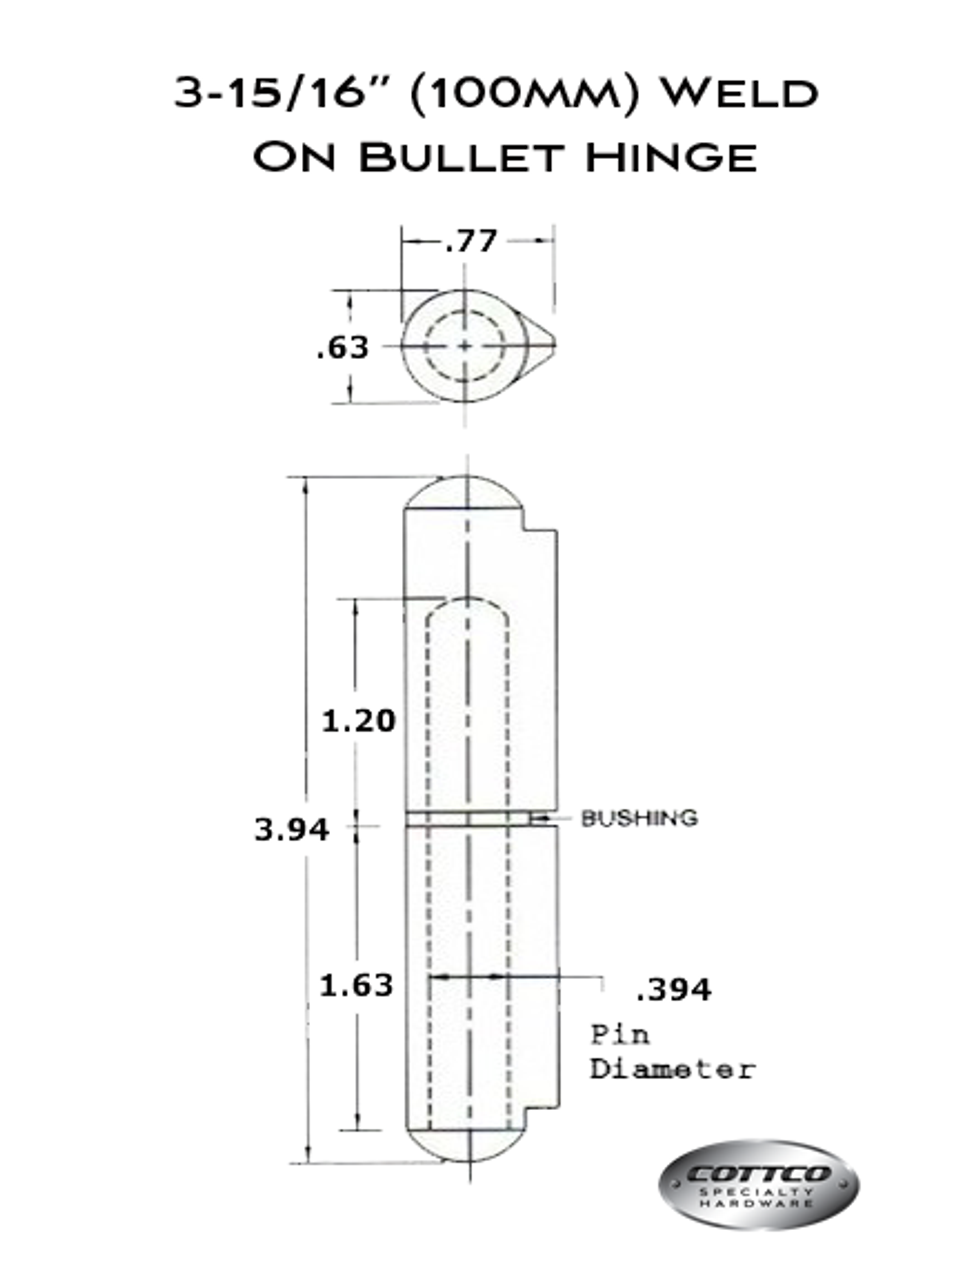 FSP-100-G/F Weld On Bullet Hinge Schematic